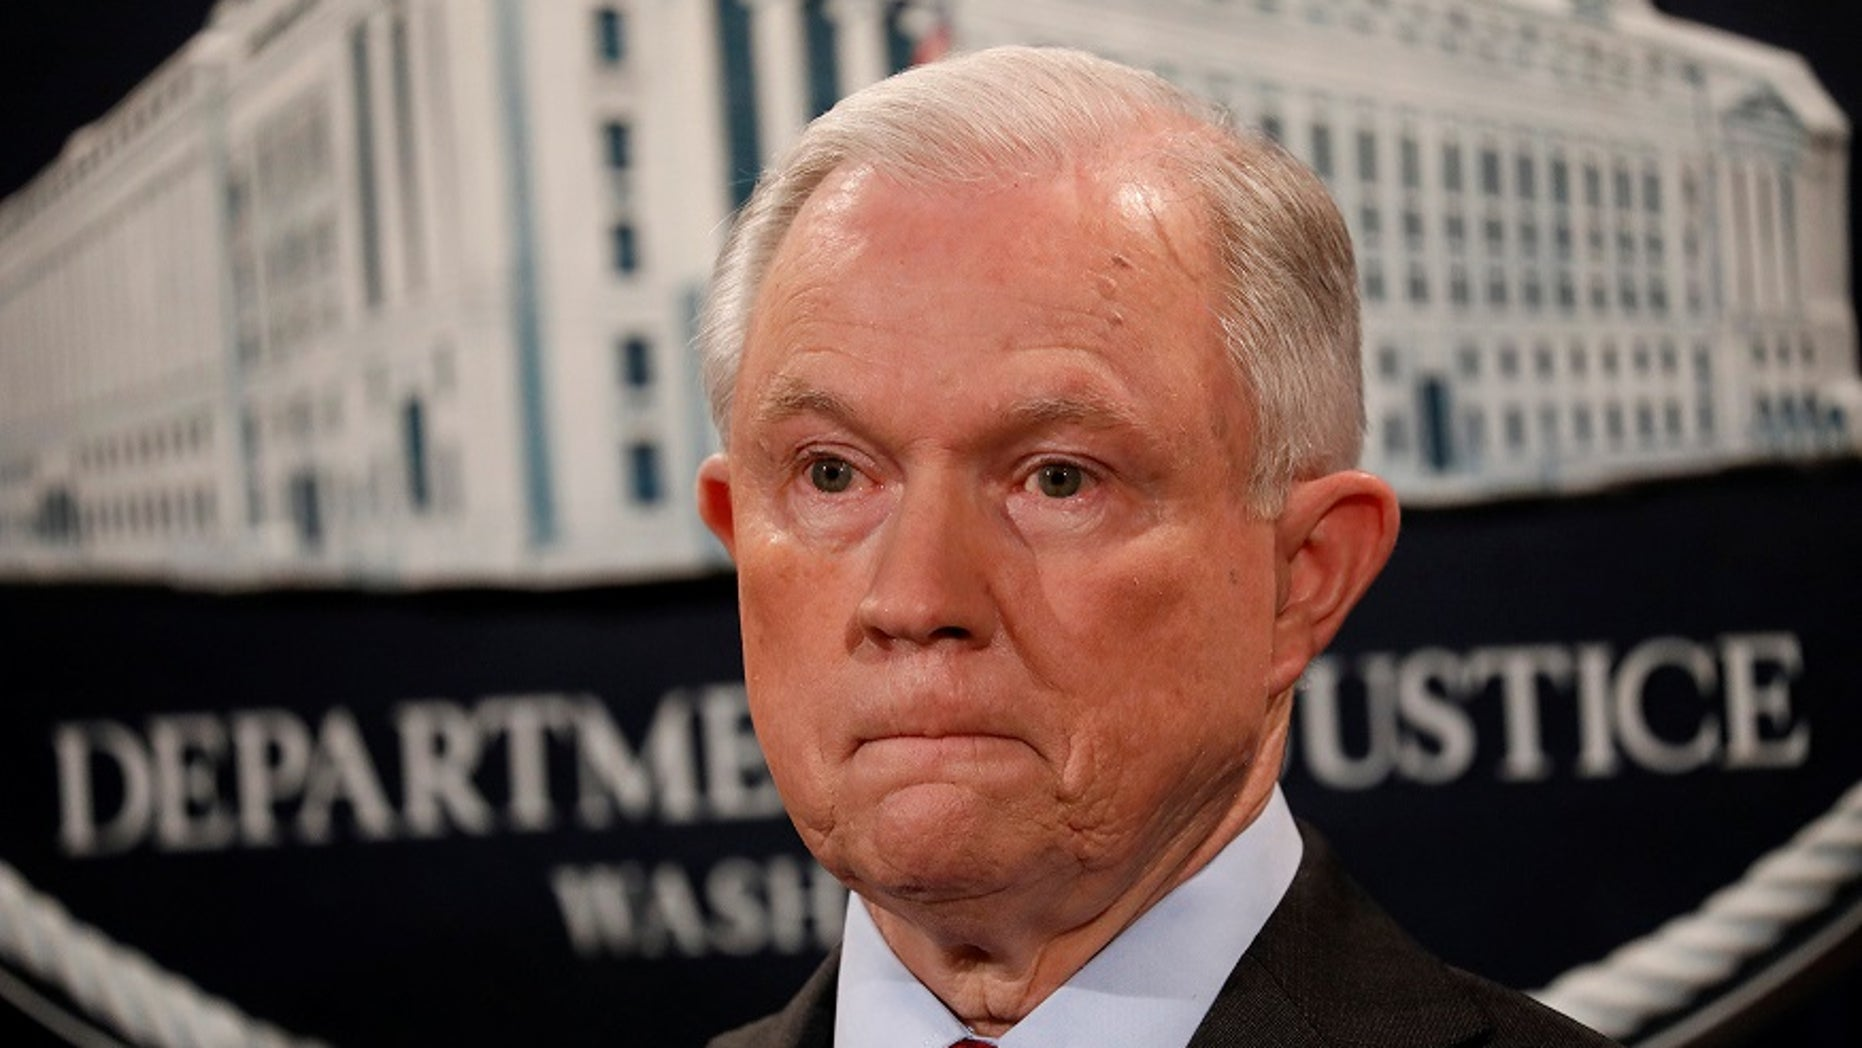 U.S. Attorney General Jeff Sessions, seen in Washington, July 20, 2017, has instructed prosecutors to pursue the most serious charges in drug-related cases.